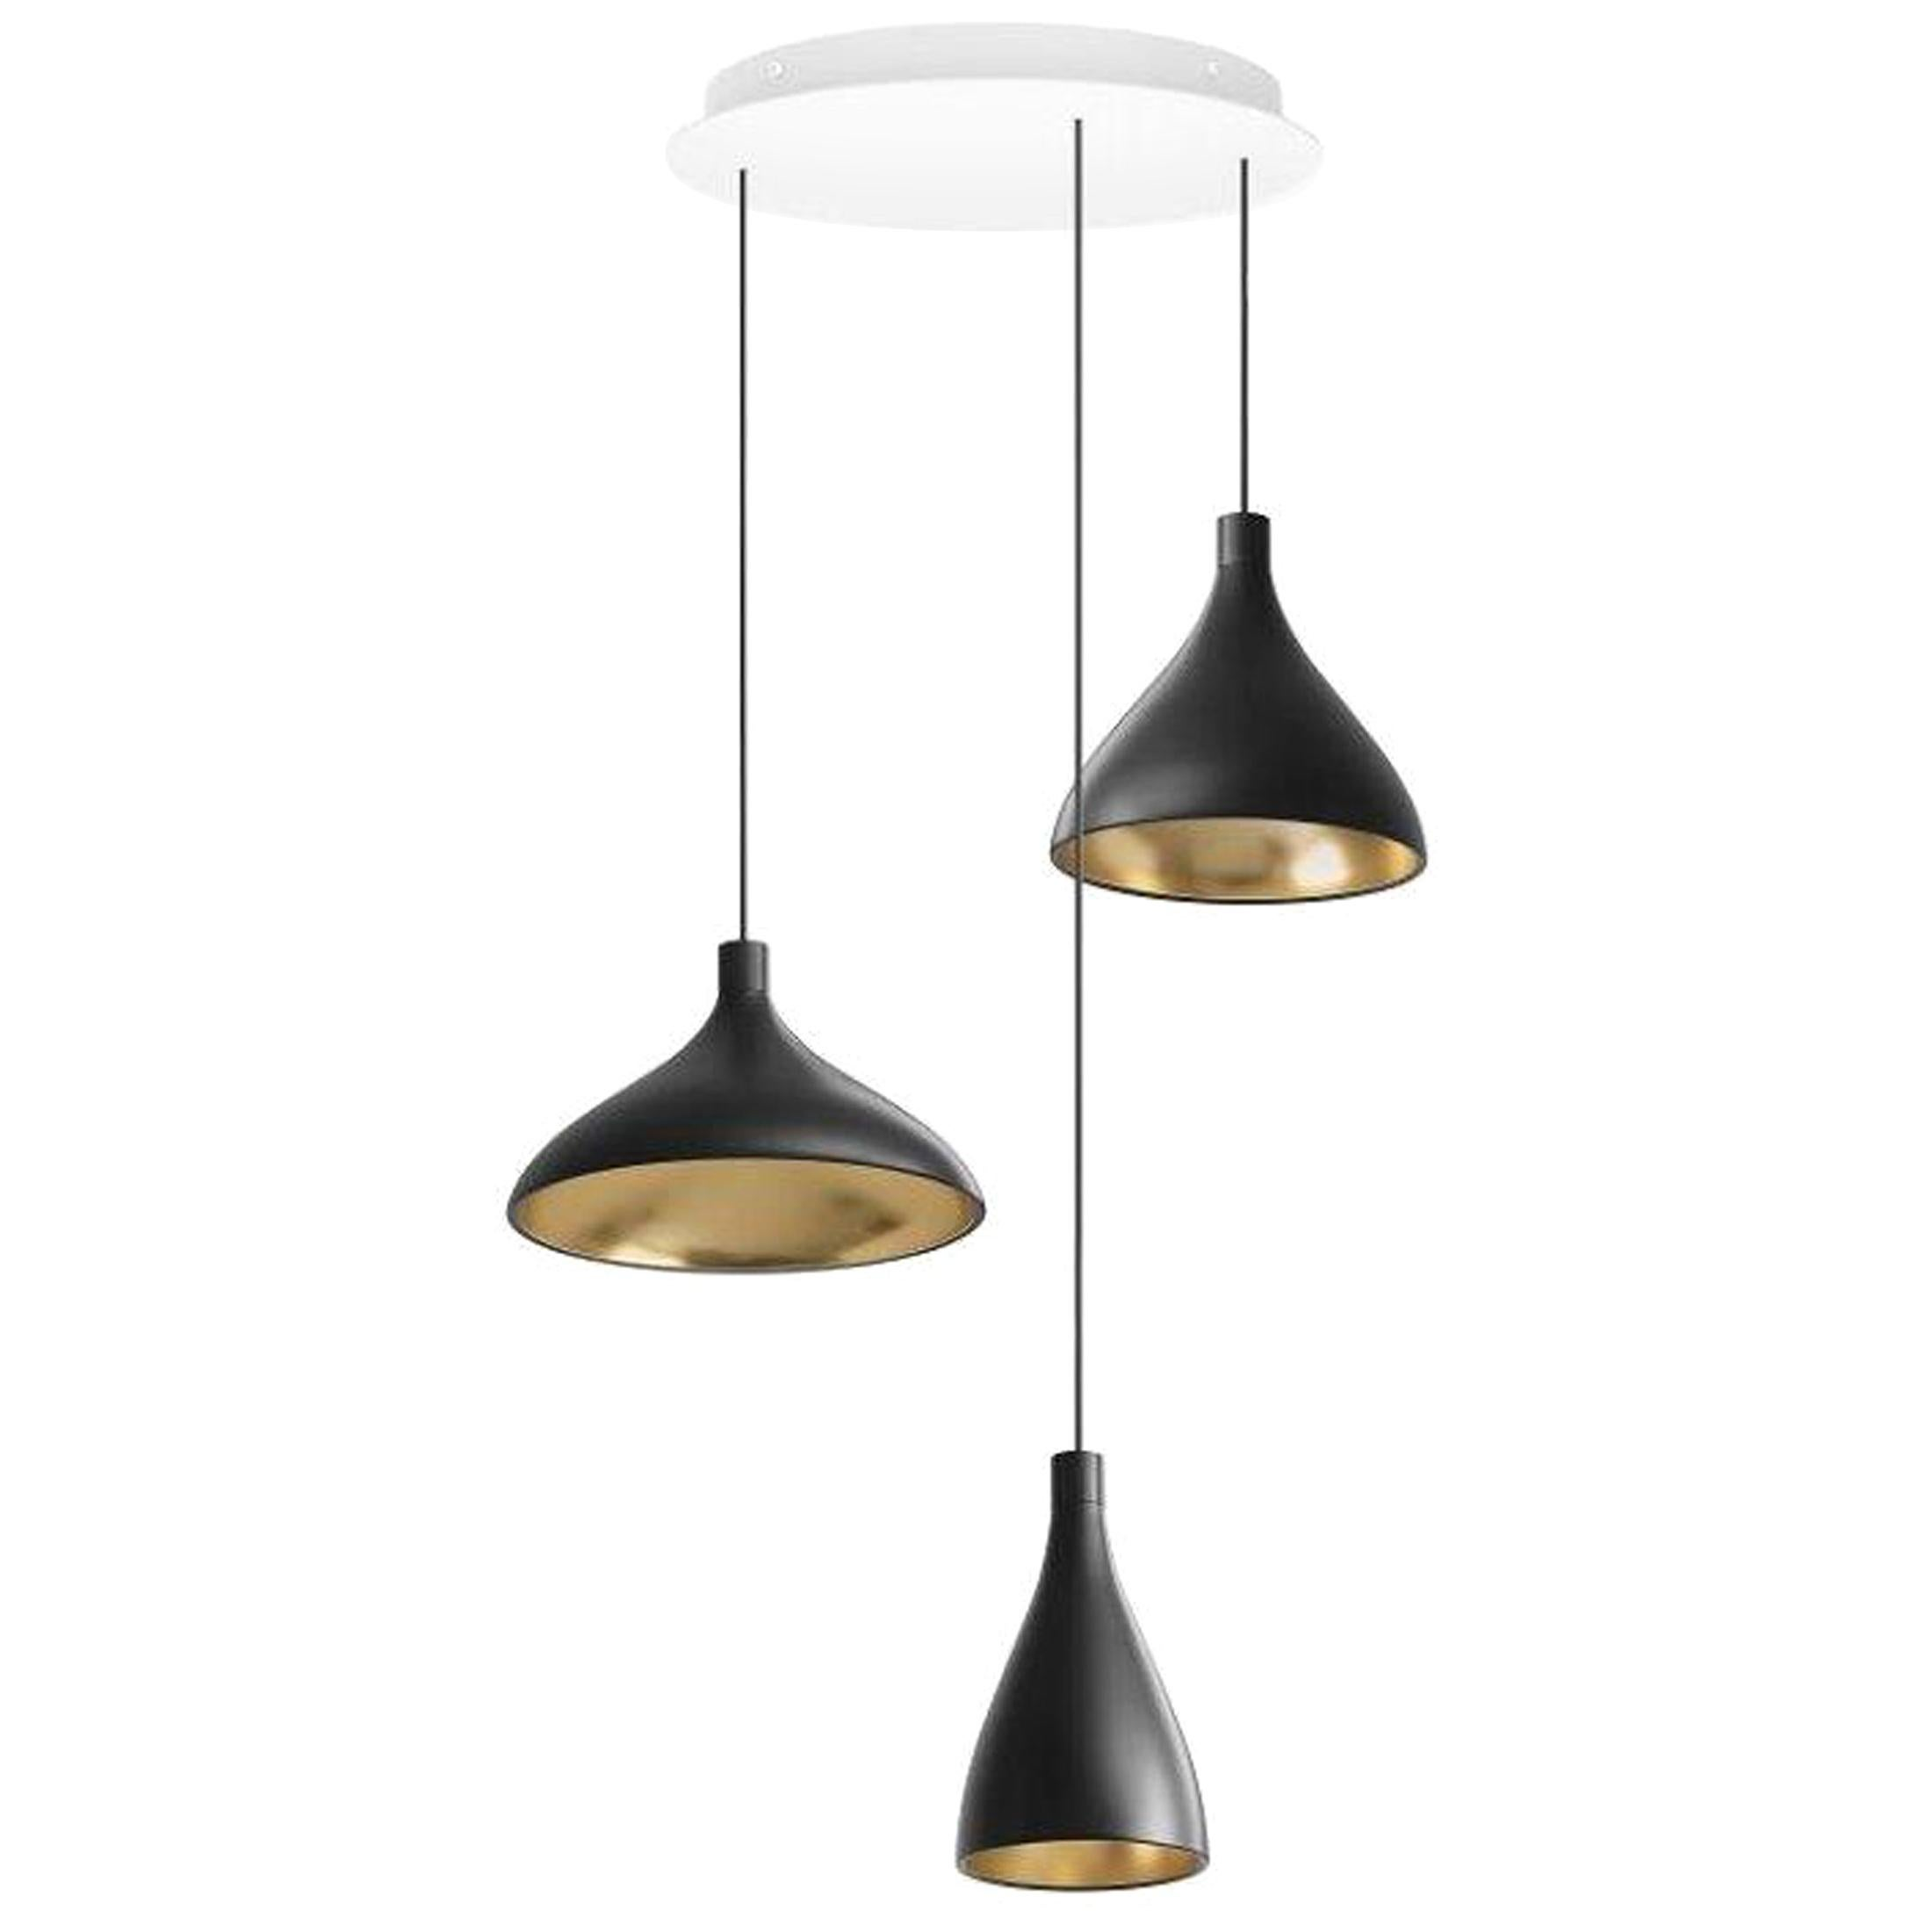 Swell XL LED 3-Piece Chandelier in Brass by Pablo Designs